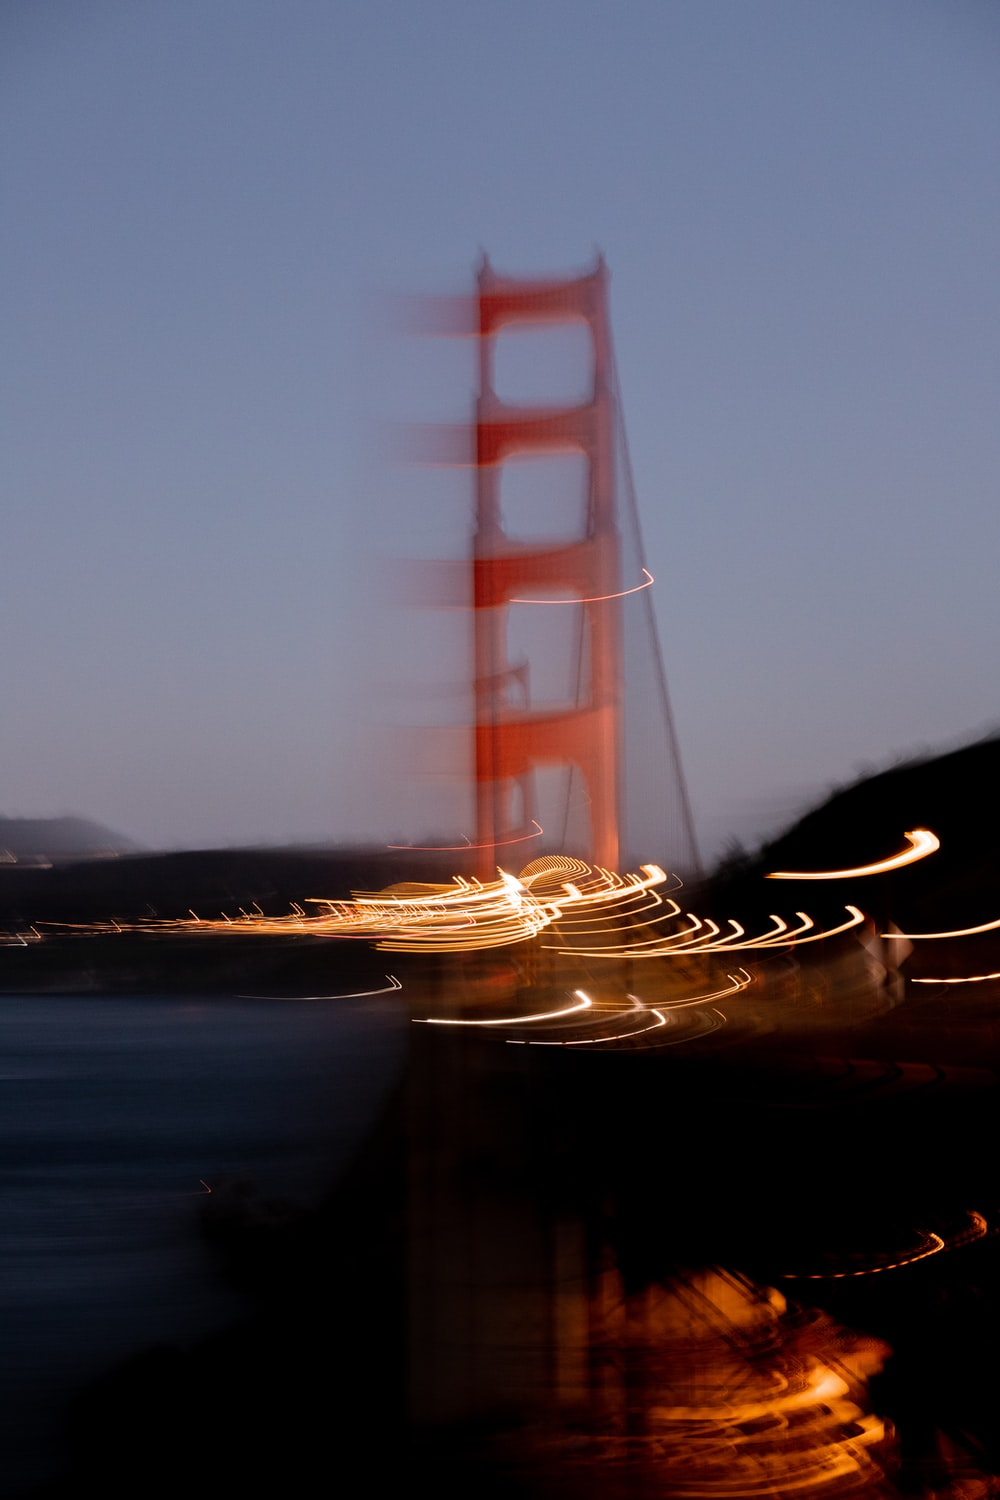 brown boat on water during night time